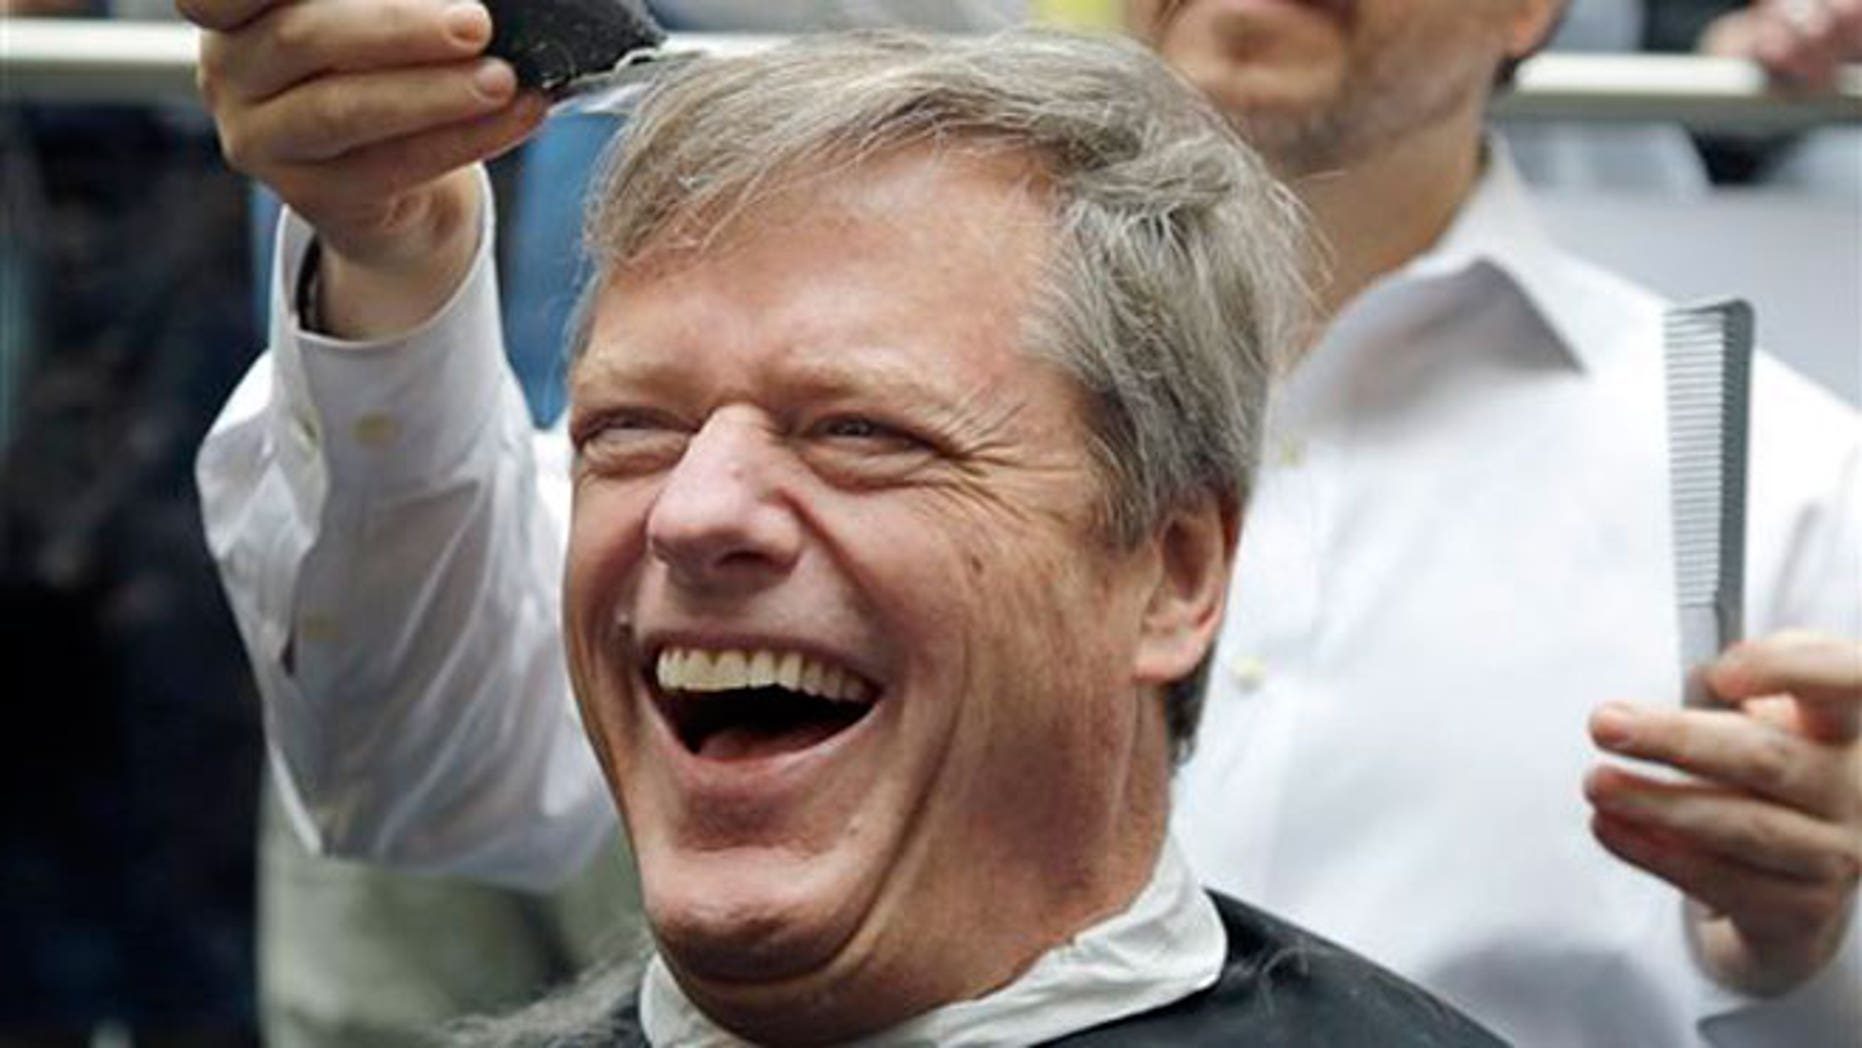 Massachusetts Gov. Charlie Baker reacts as he gets a buzz cut during a fundraising drive at Granite Telecommunications in Quincy, Mass., Tuesday, April 7, 2015, in support of the Dana-Farber Cancer Institute.